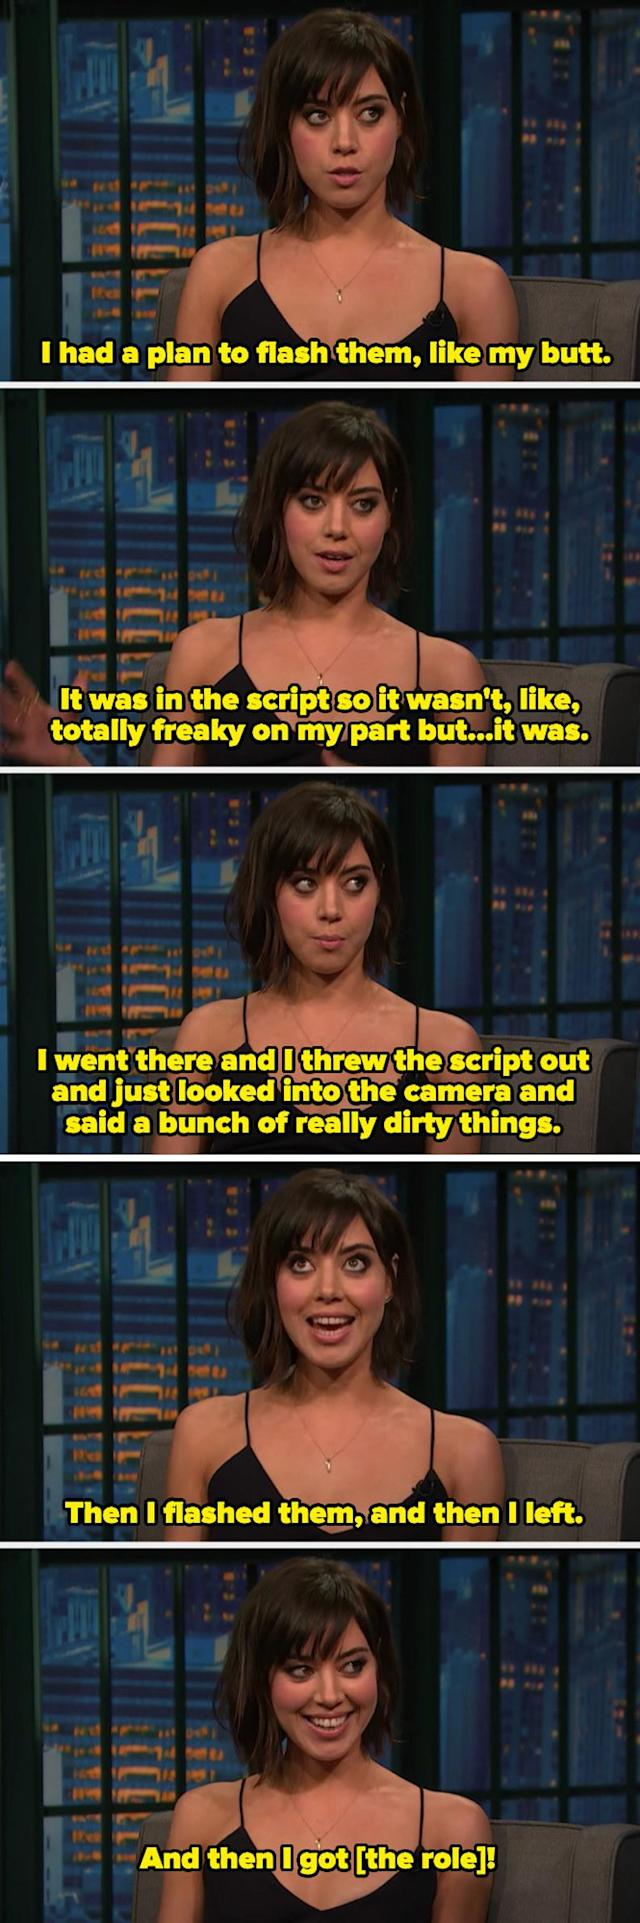 It was hilariously insane when she was explaining how she gave the auditions and got the role in Dirty Grandpa.